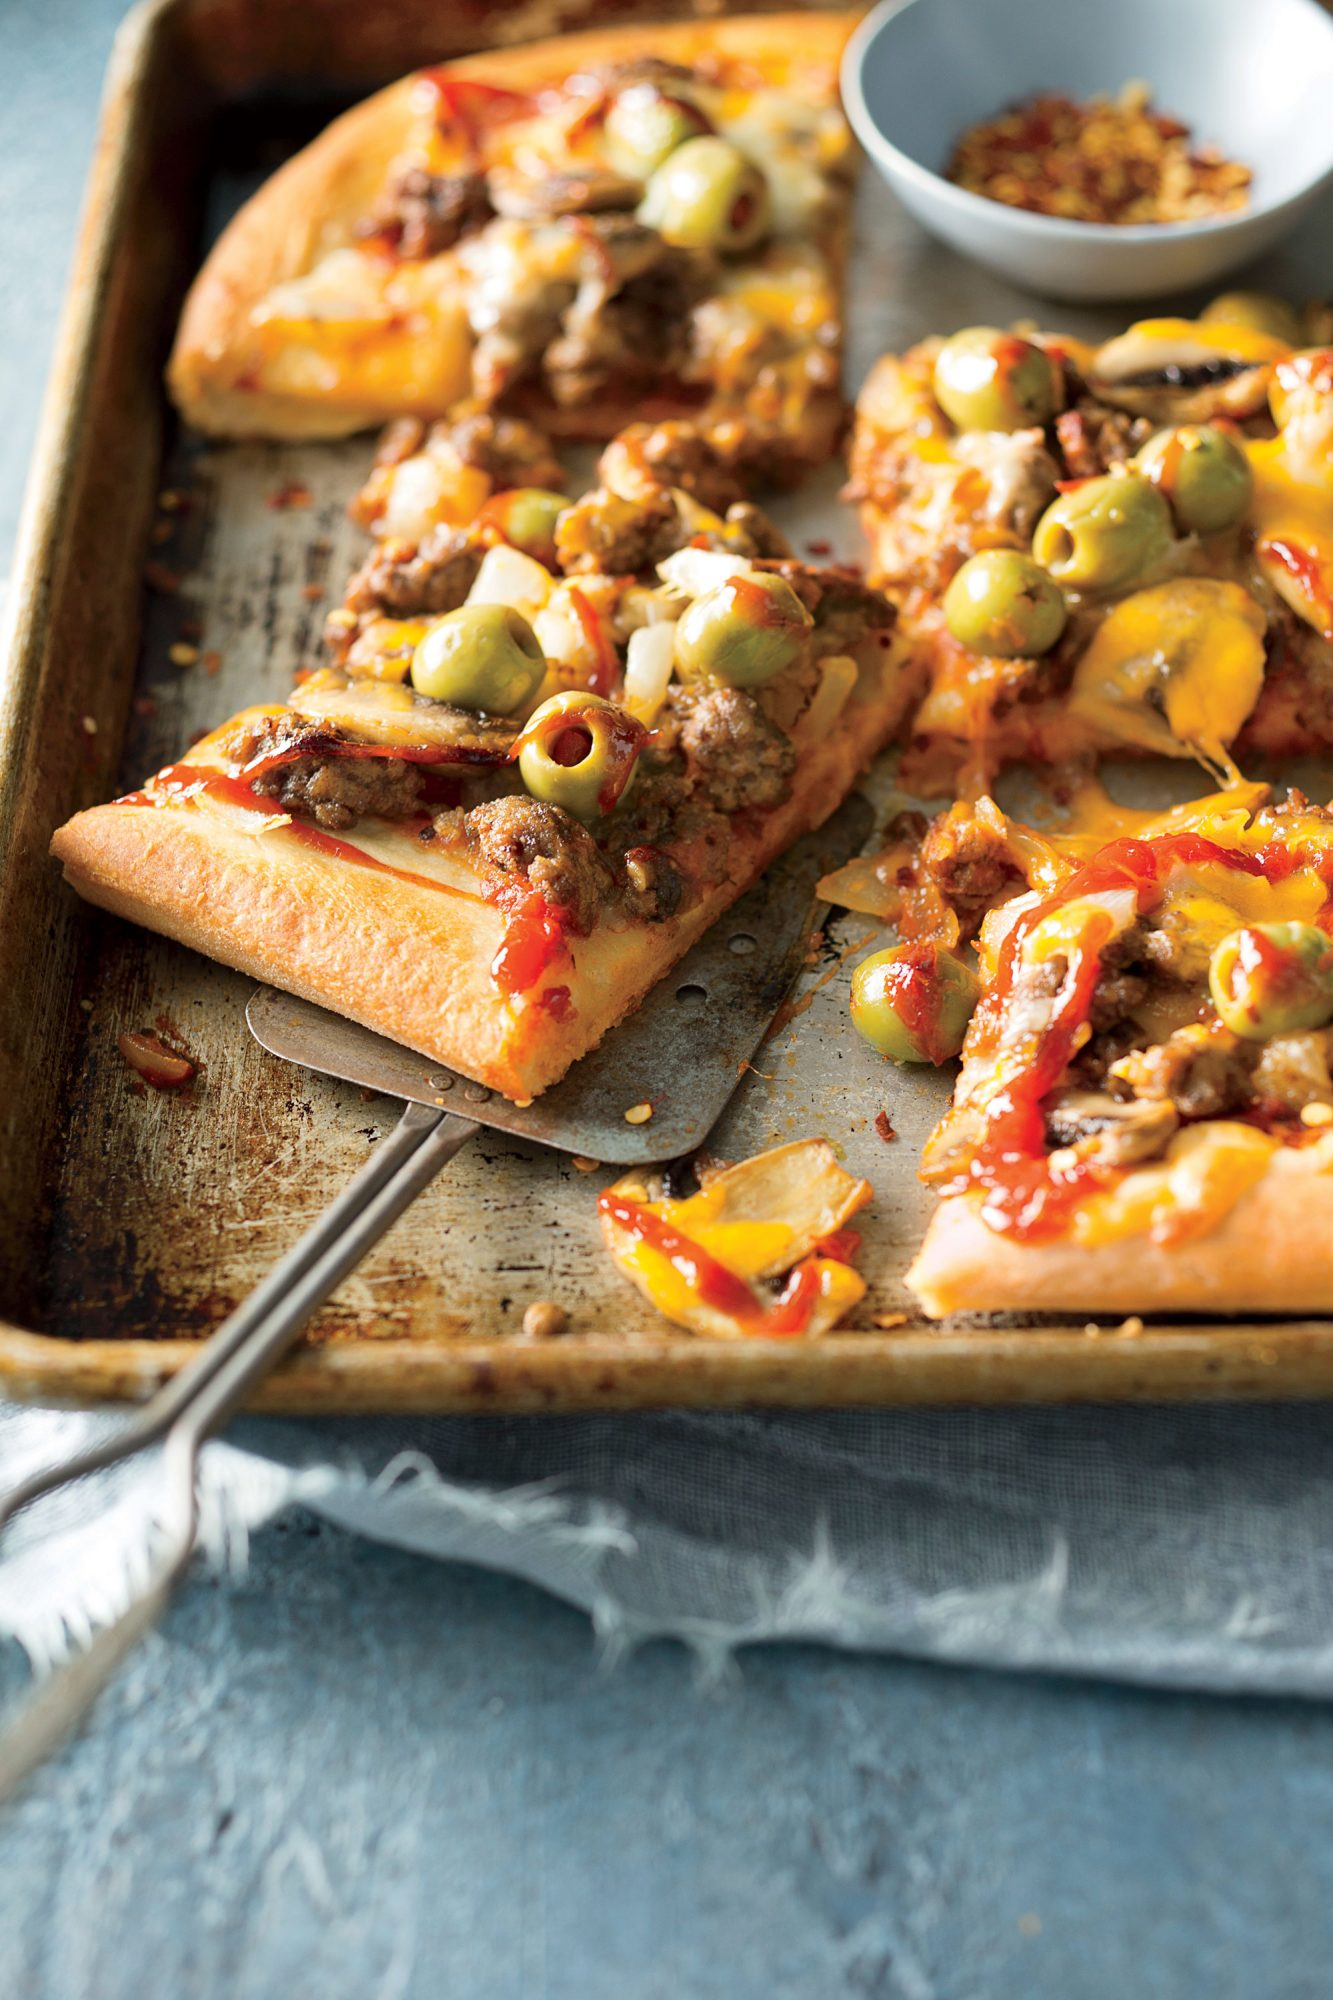 Emily Nabors Hall's Cheeseburger Pizza image